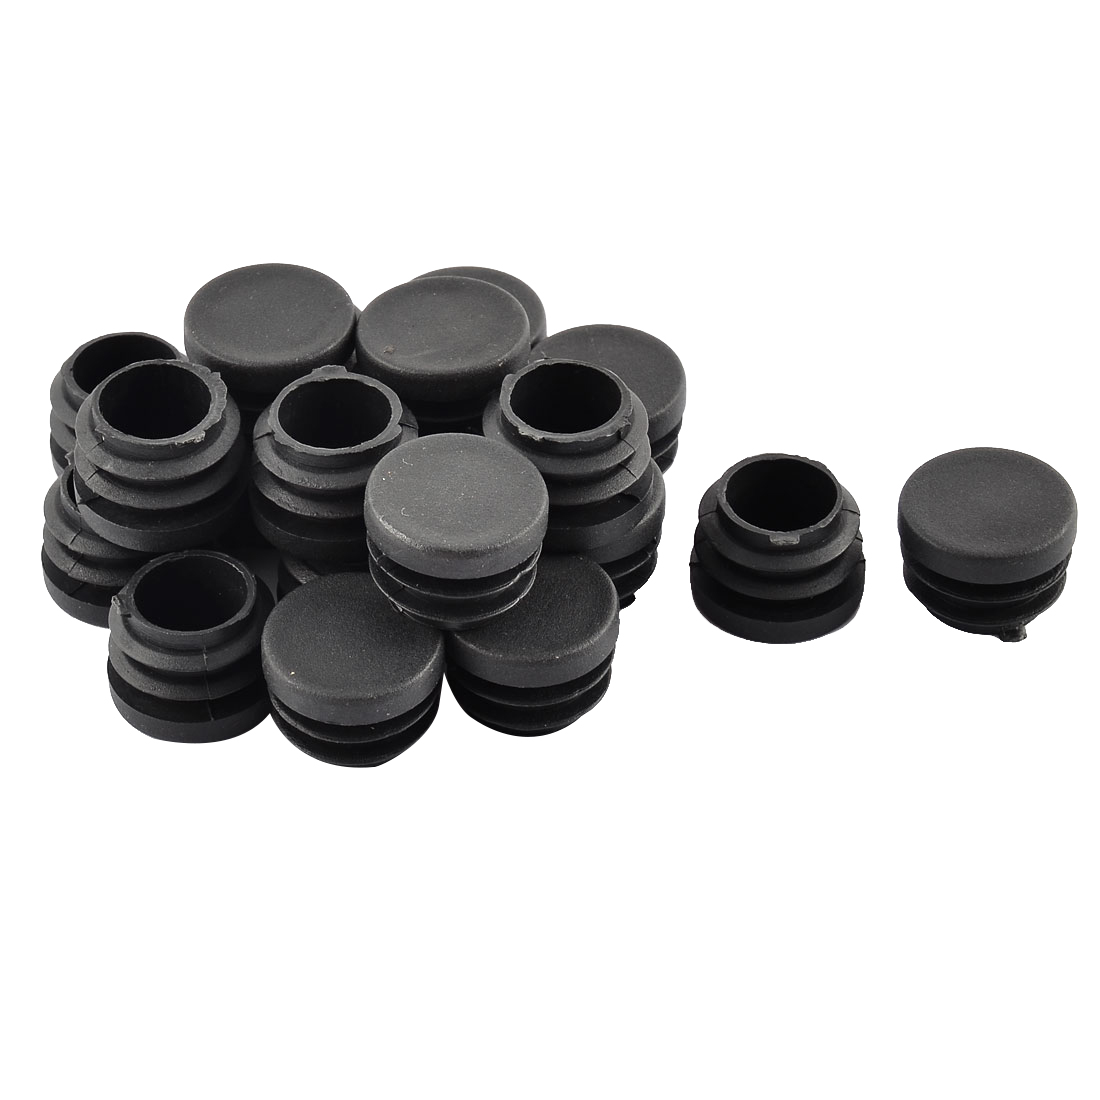 Floor Protect No Scratch Round Chair Leg Pipe Tube Insert Blanking 24mm Dia 20pcs